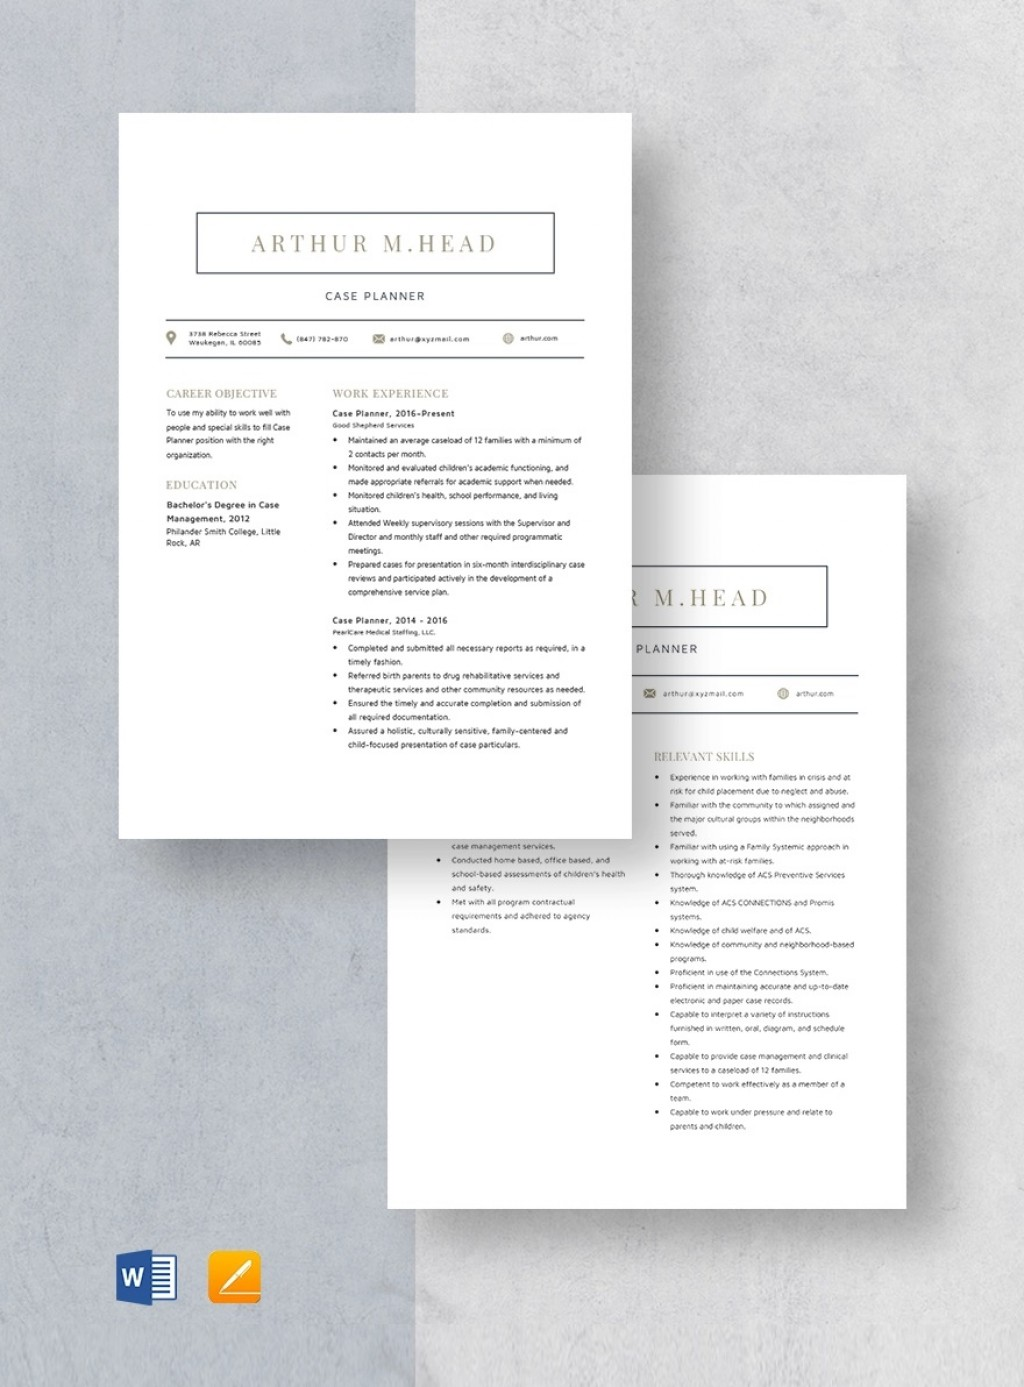 Template Case Planner Resume Large